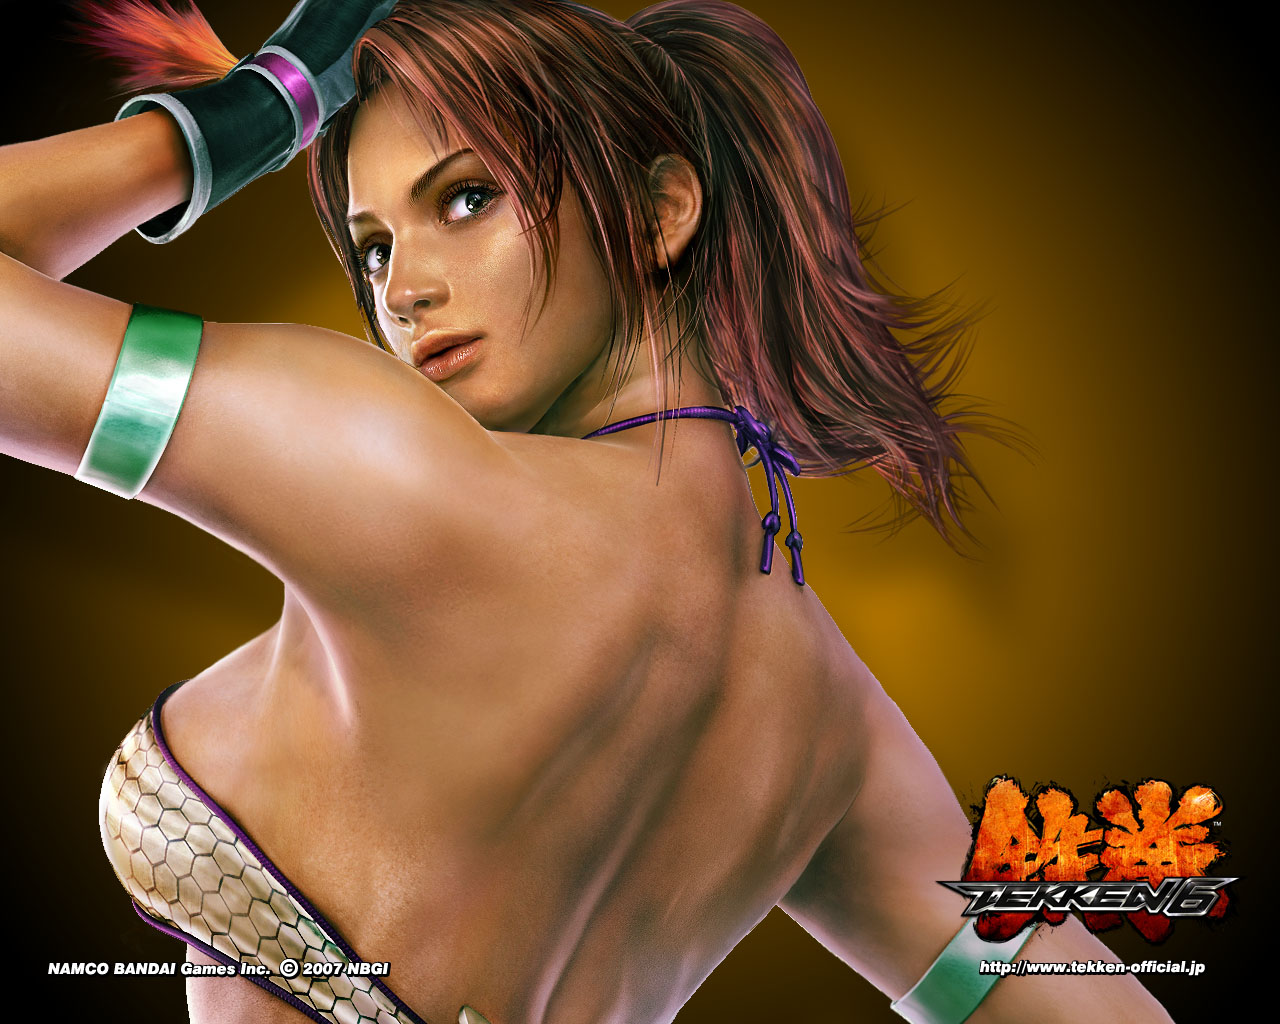 http://4.bp.blogspot.com/-h_ScZuEAliY/T-had2OgEnI/AAAAAAAAAXY/rKC1KCJHvKk/s1600/Tekken+6+HD+Wallpapers+(10).jpg